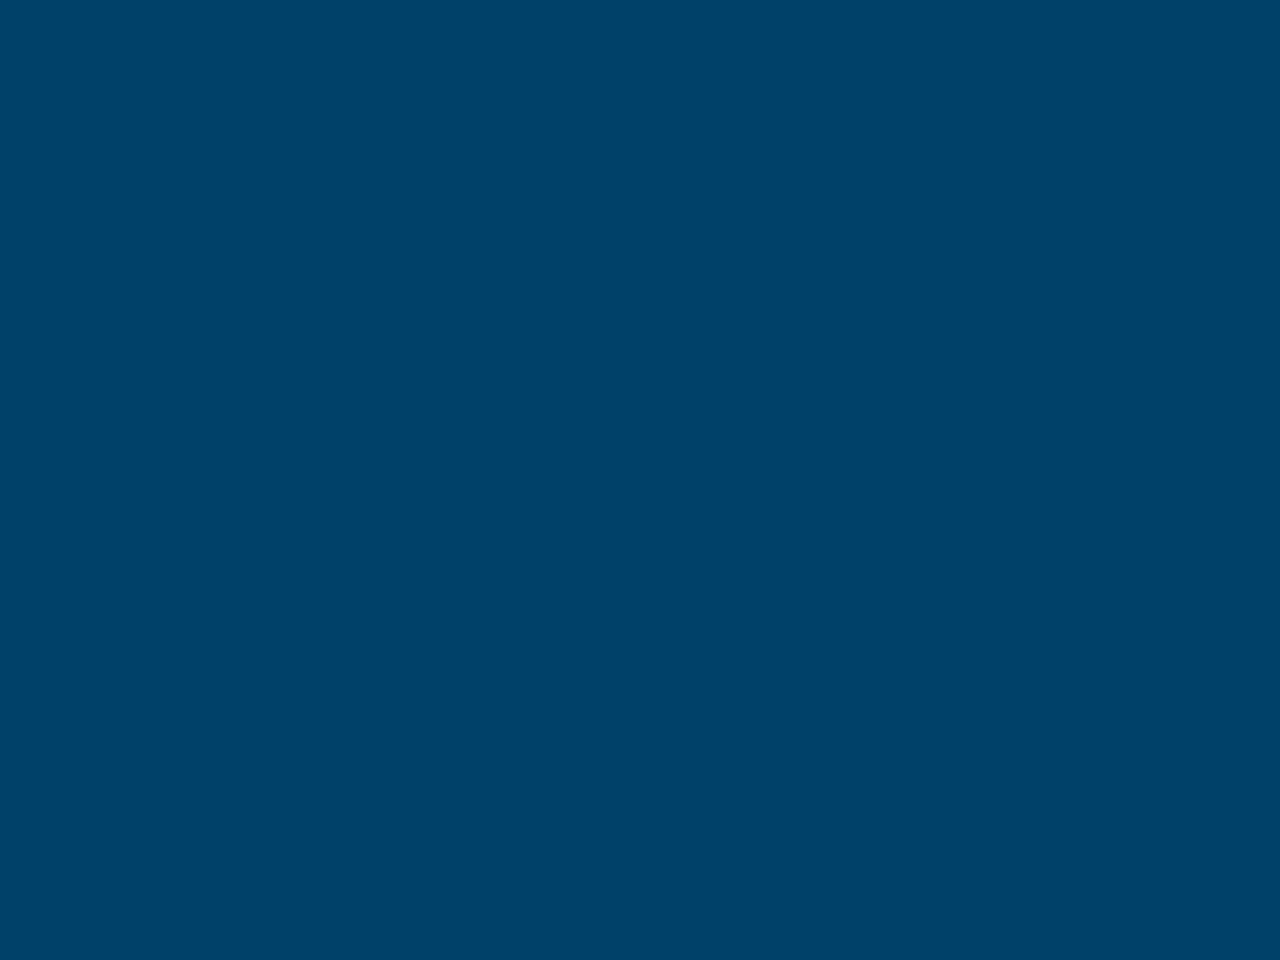 1280x960 Dark Imperial Blue Solid Color Background